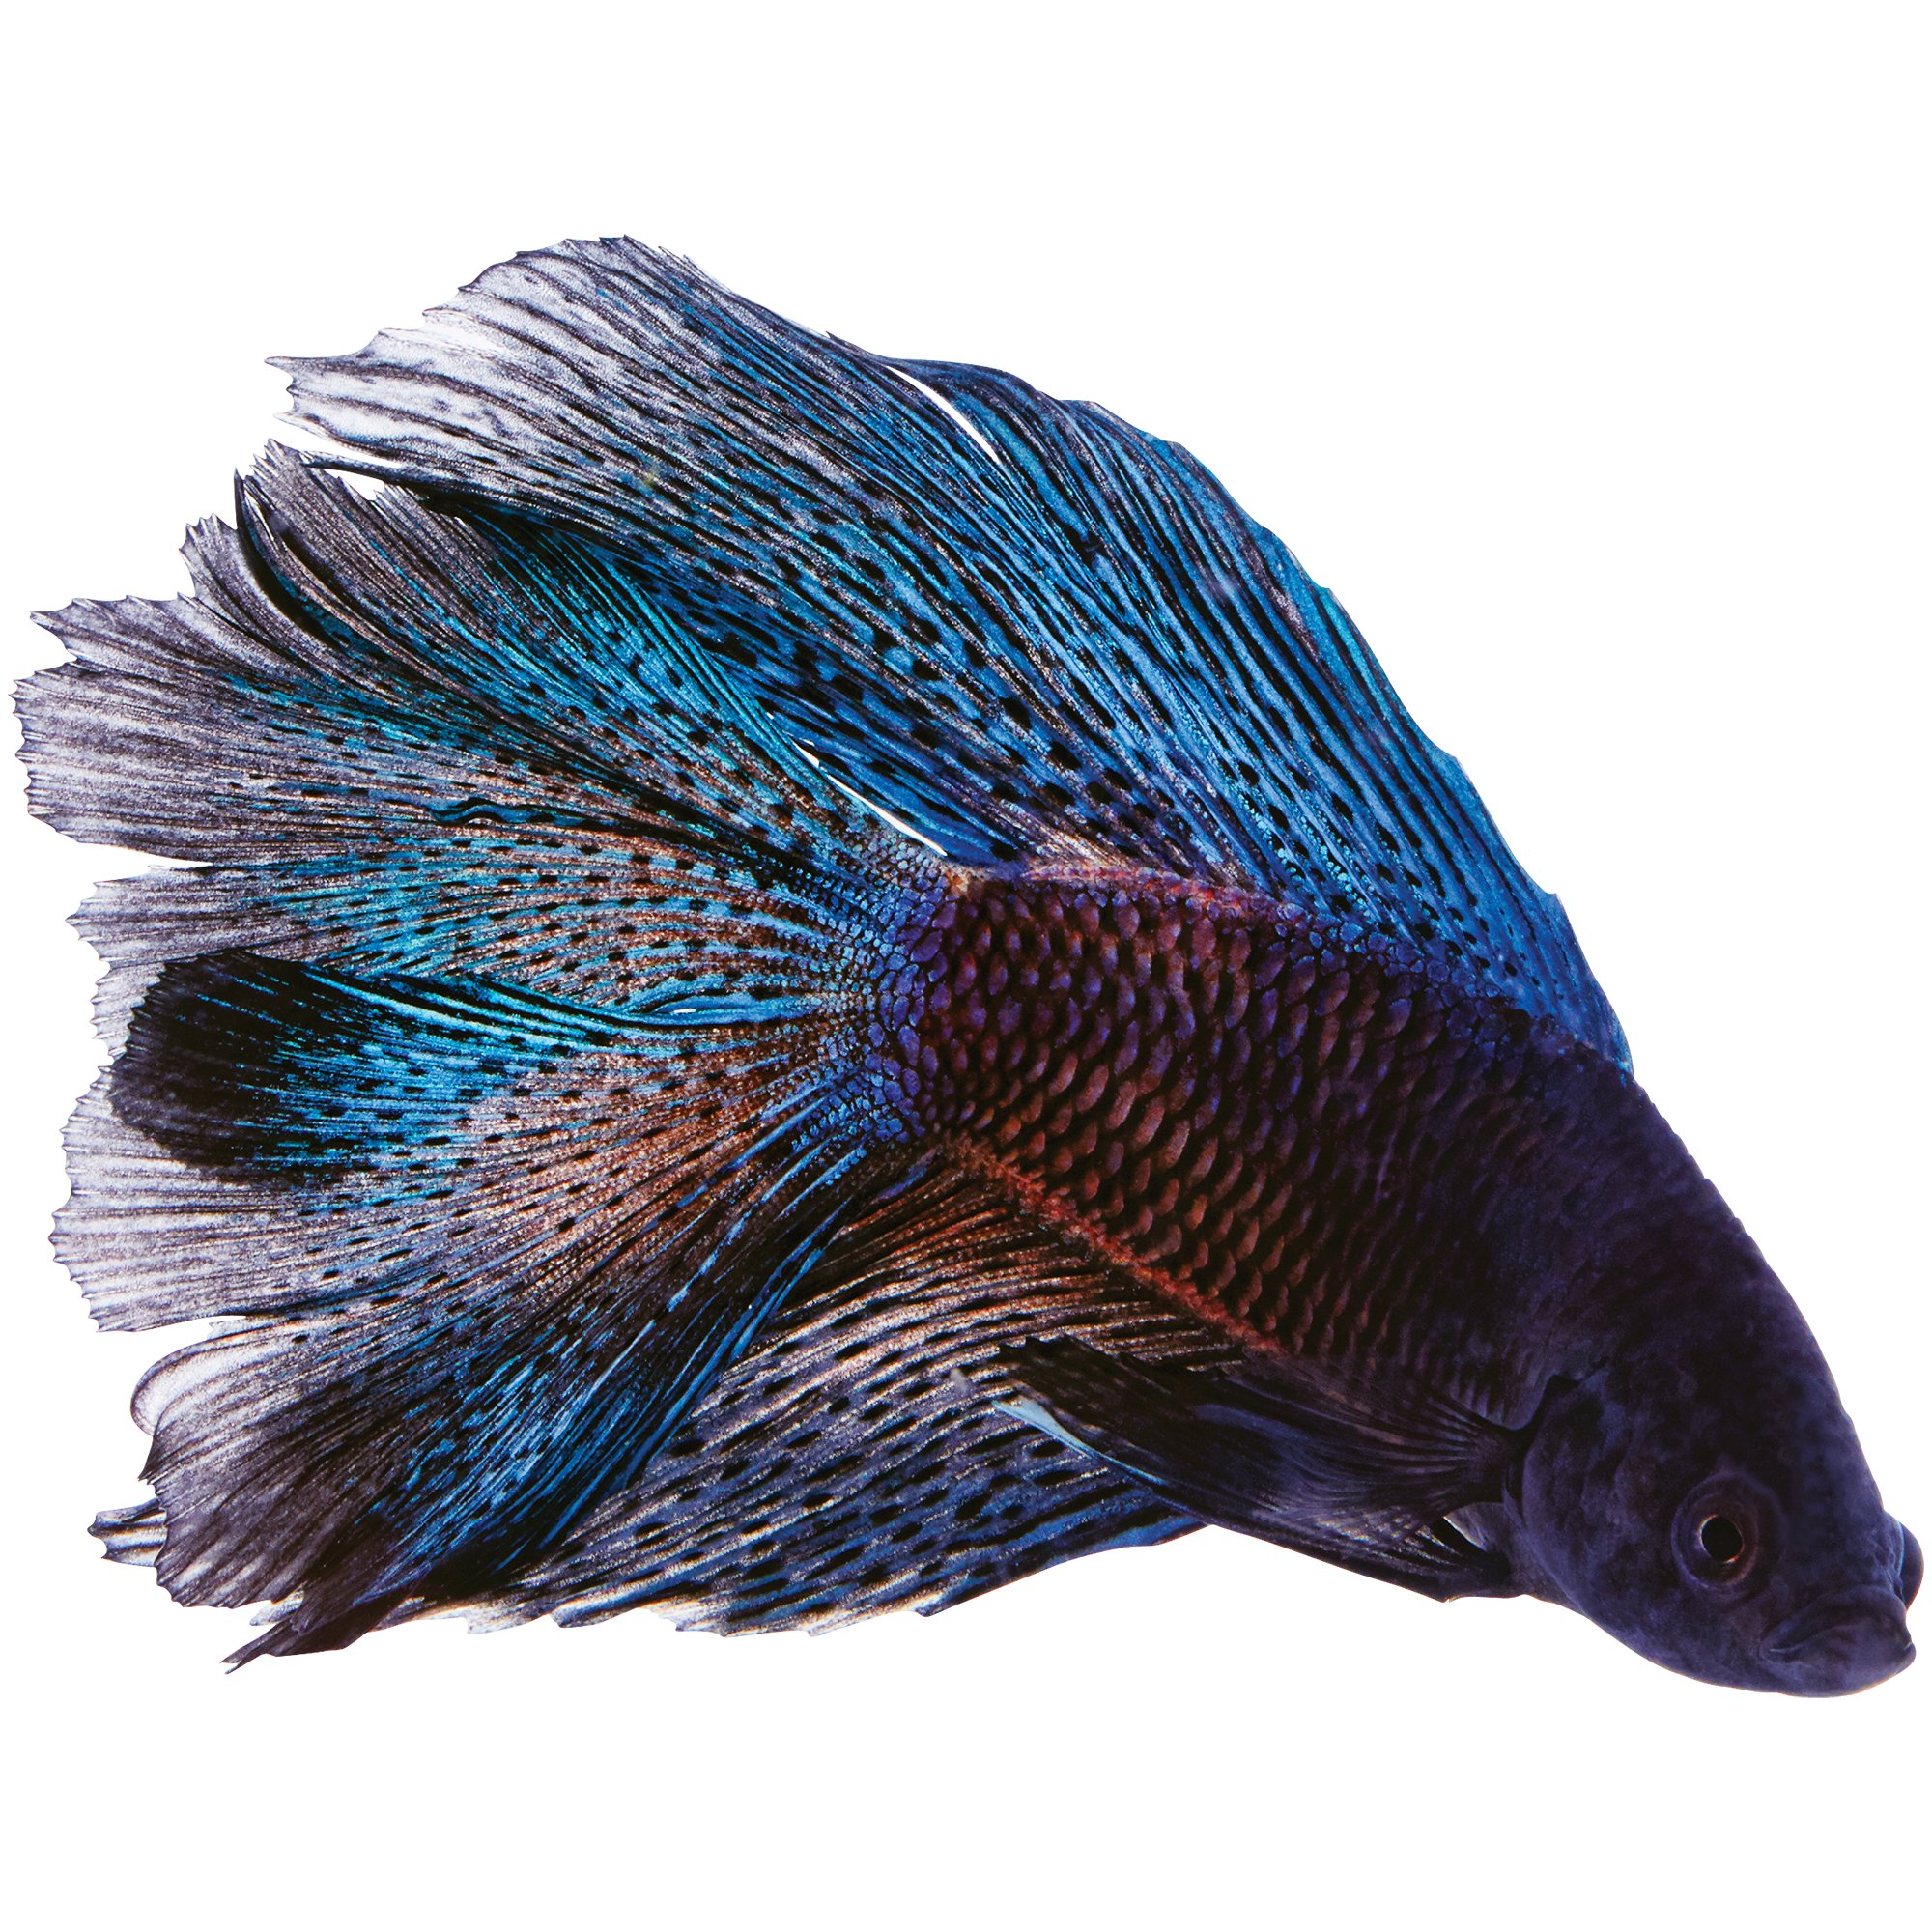 Black Orchid Crowntail Betta Find Complete Details about Black Orchid Crowntail BettaCrowntail Betta from Fowl amp Livestock Supplier or ManufacturerSuper Sonic